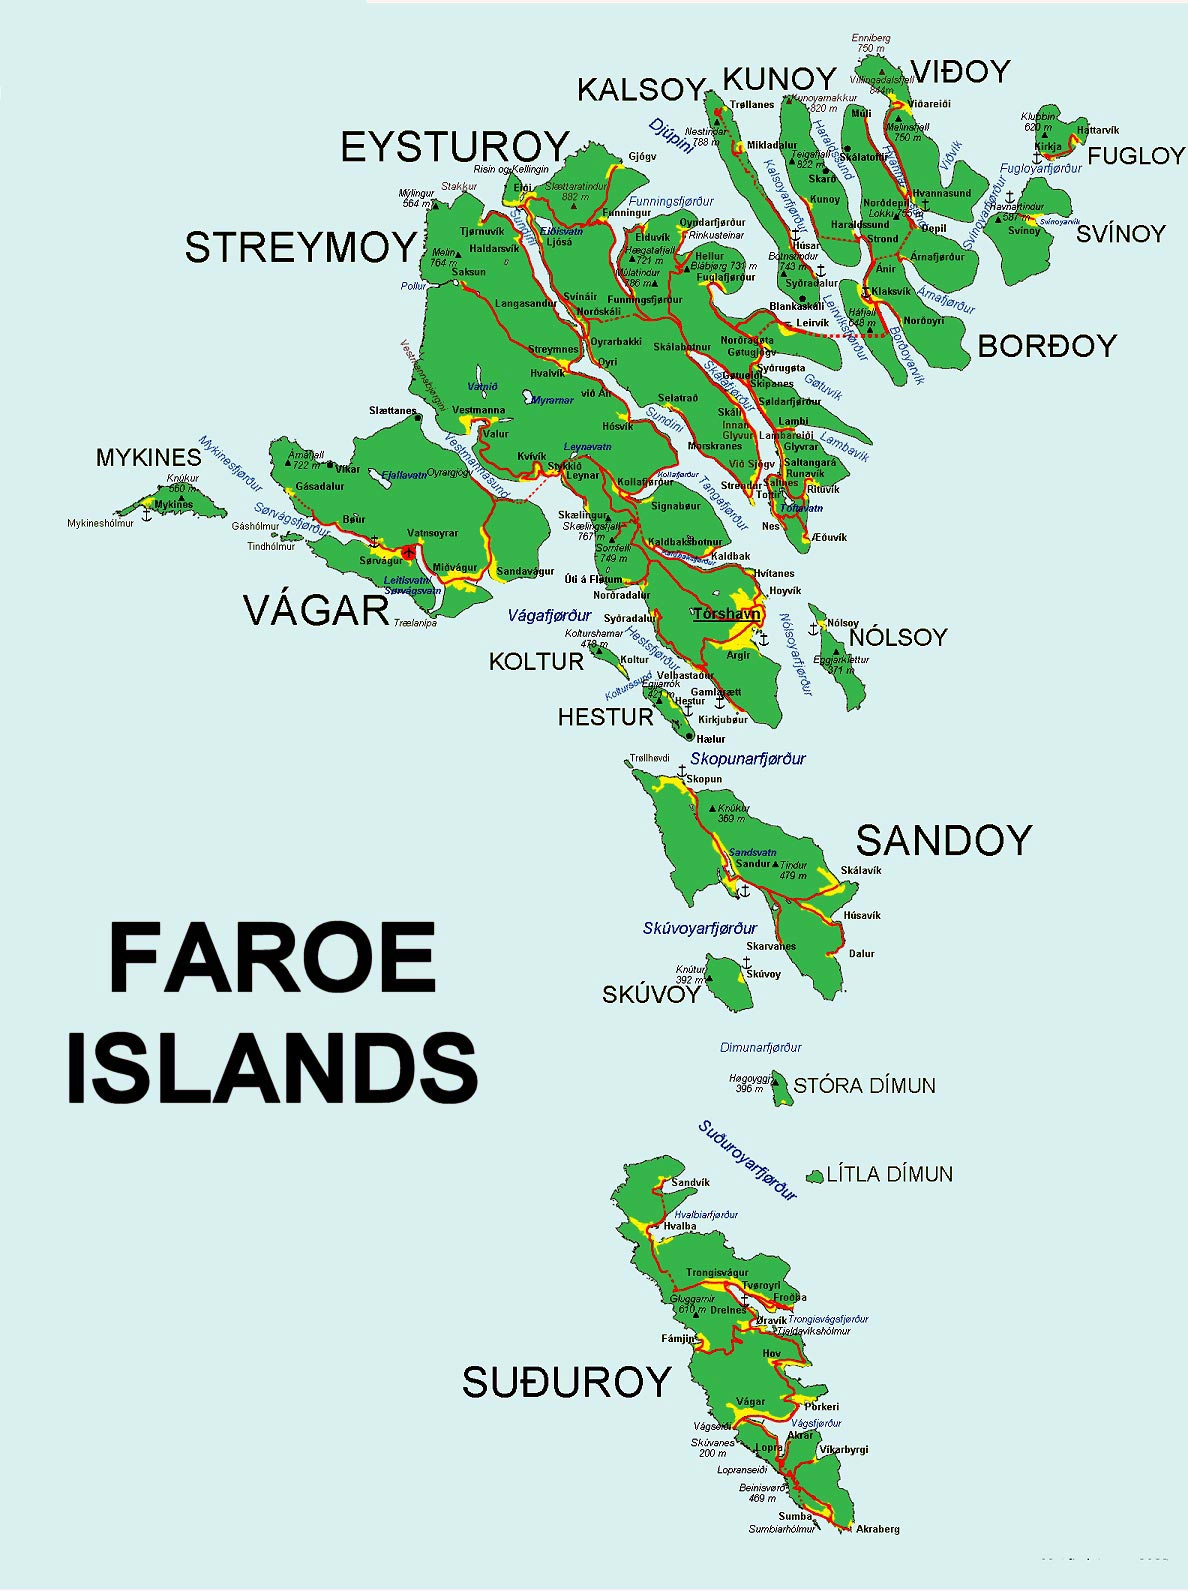 Faroe Islands Maps Printable Maps Of Faroe Islands For Download - Islands map